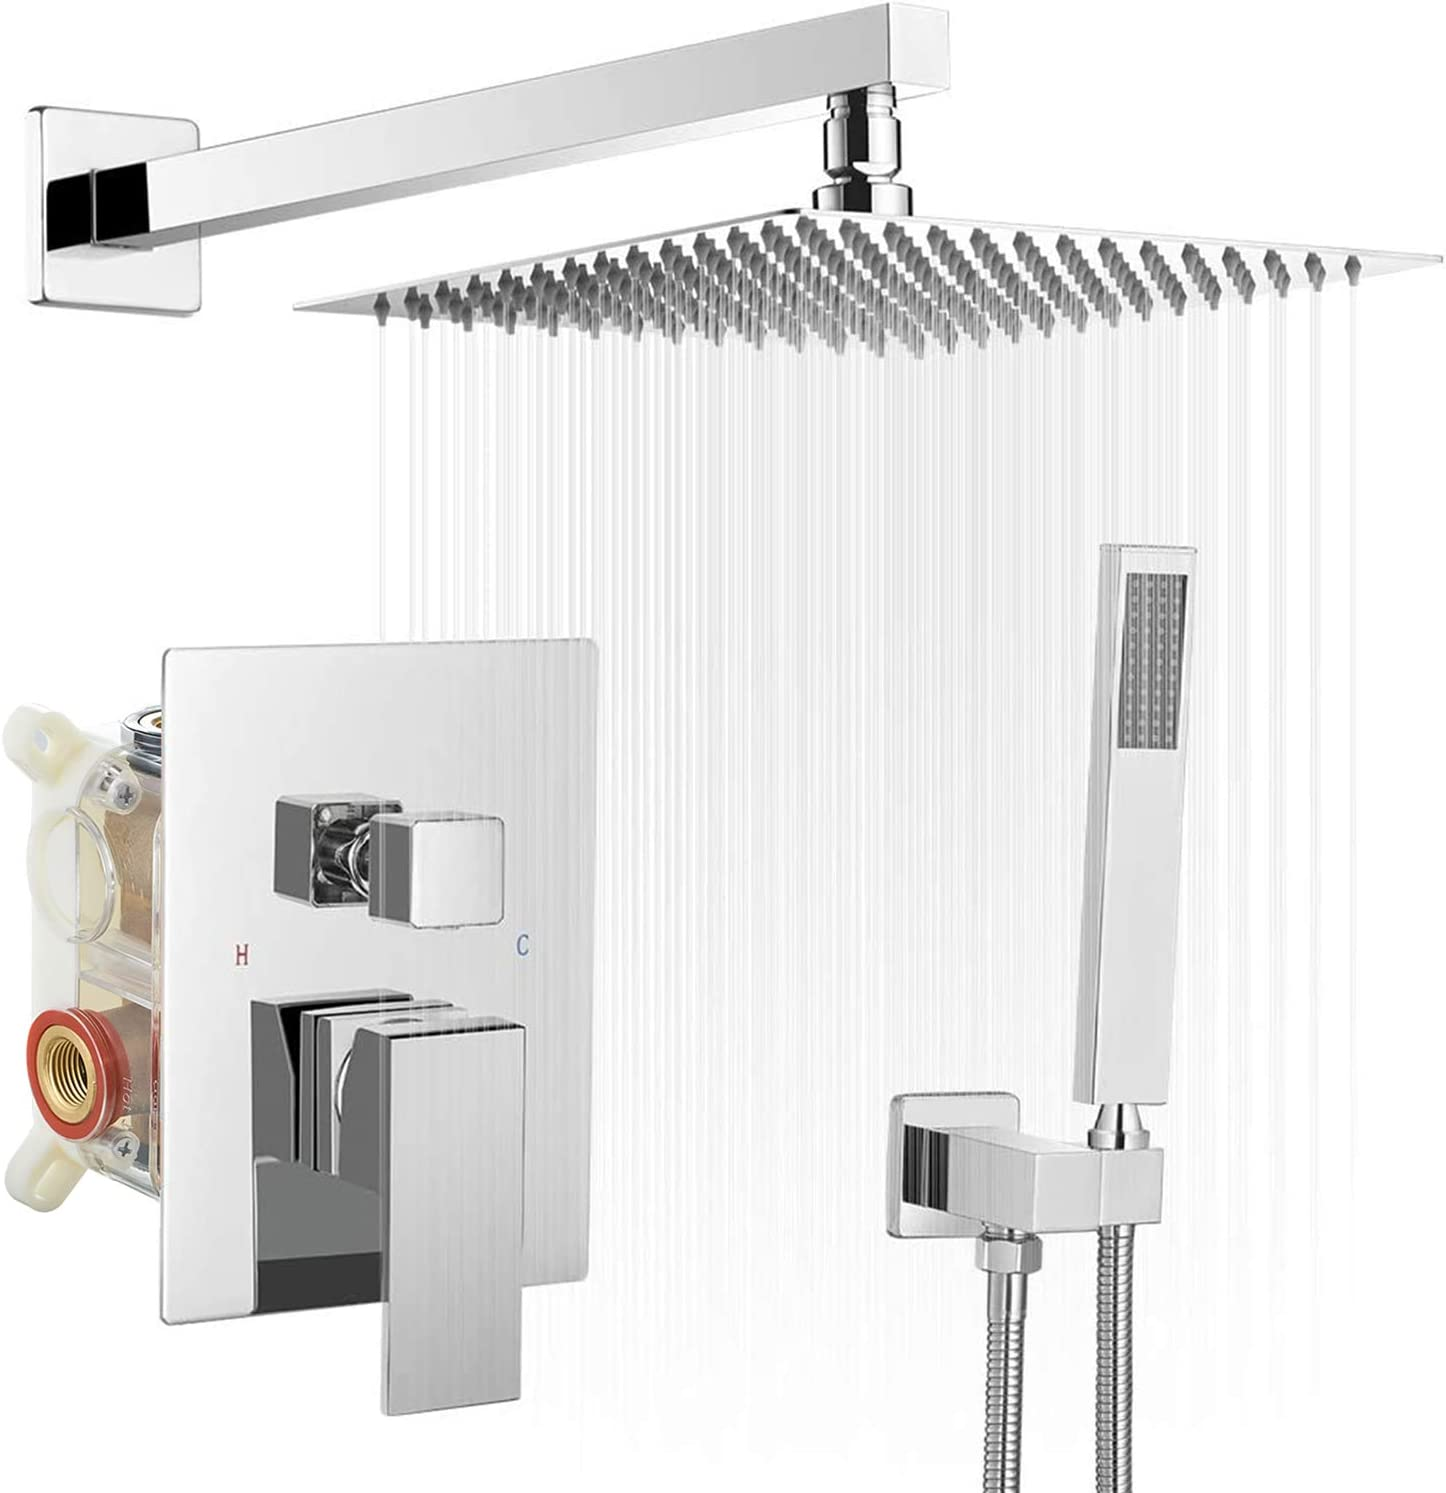 BWE 20 Inch Square Bathroom Luxury Rain Mixer Shower Combo Set Wall Mounted  Shower Kit Rainfall Shower Head System Polished Chrome Shower Faucet ...